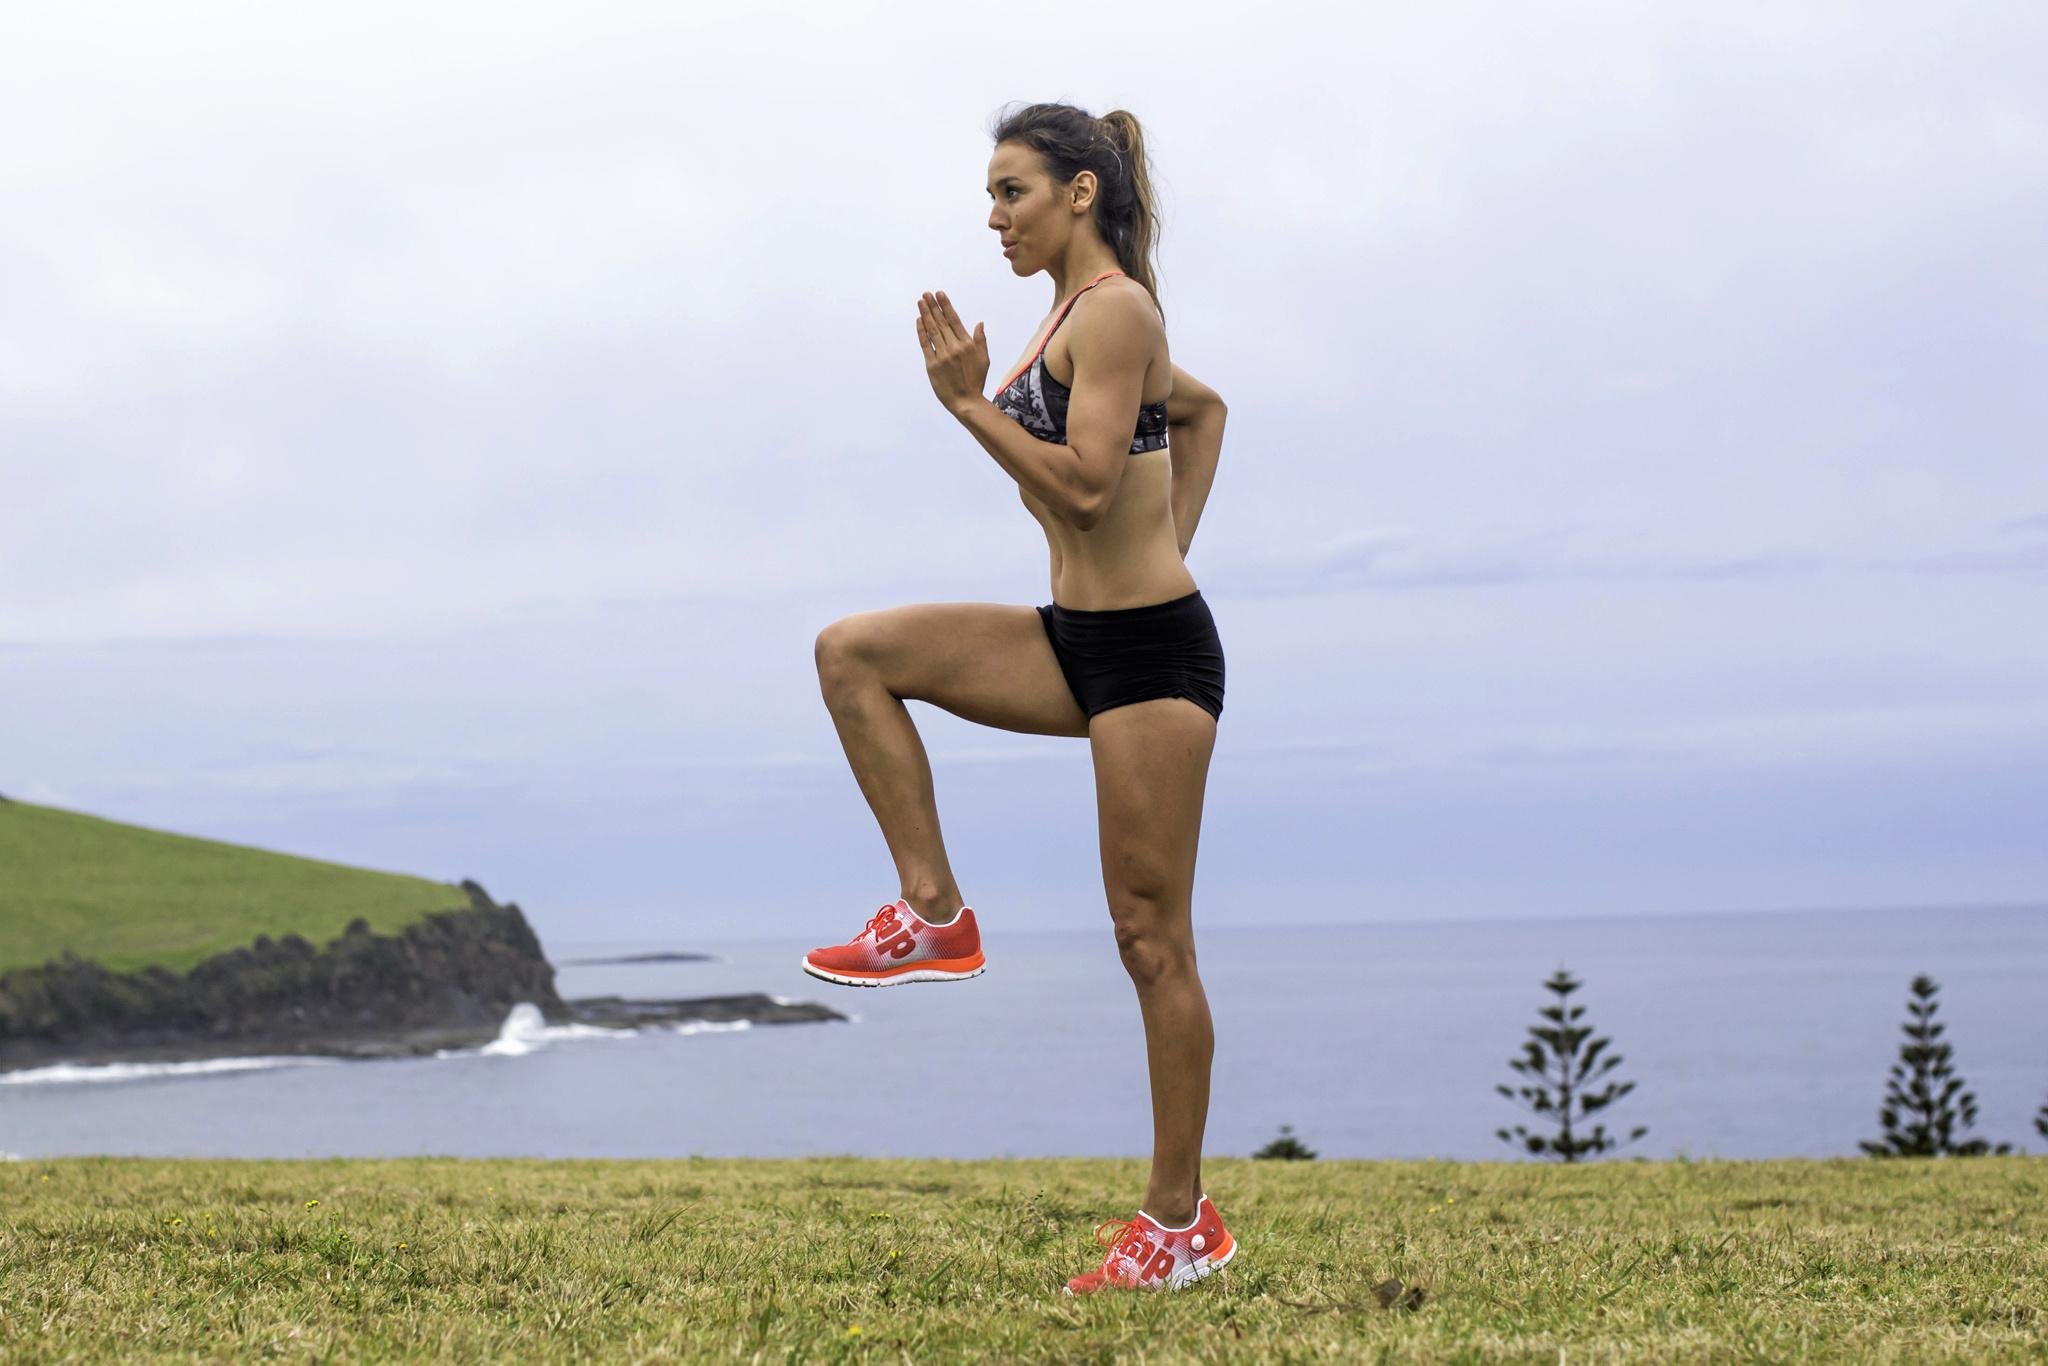 12-WEEK CHALLENGE ONLY, EXERCISE HighKnees02